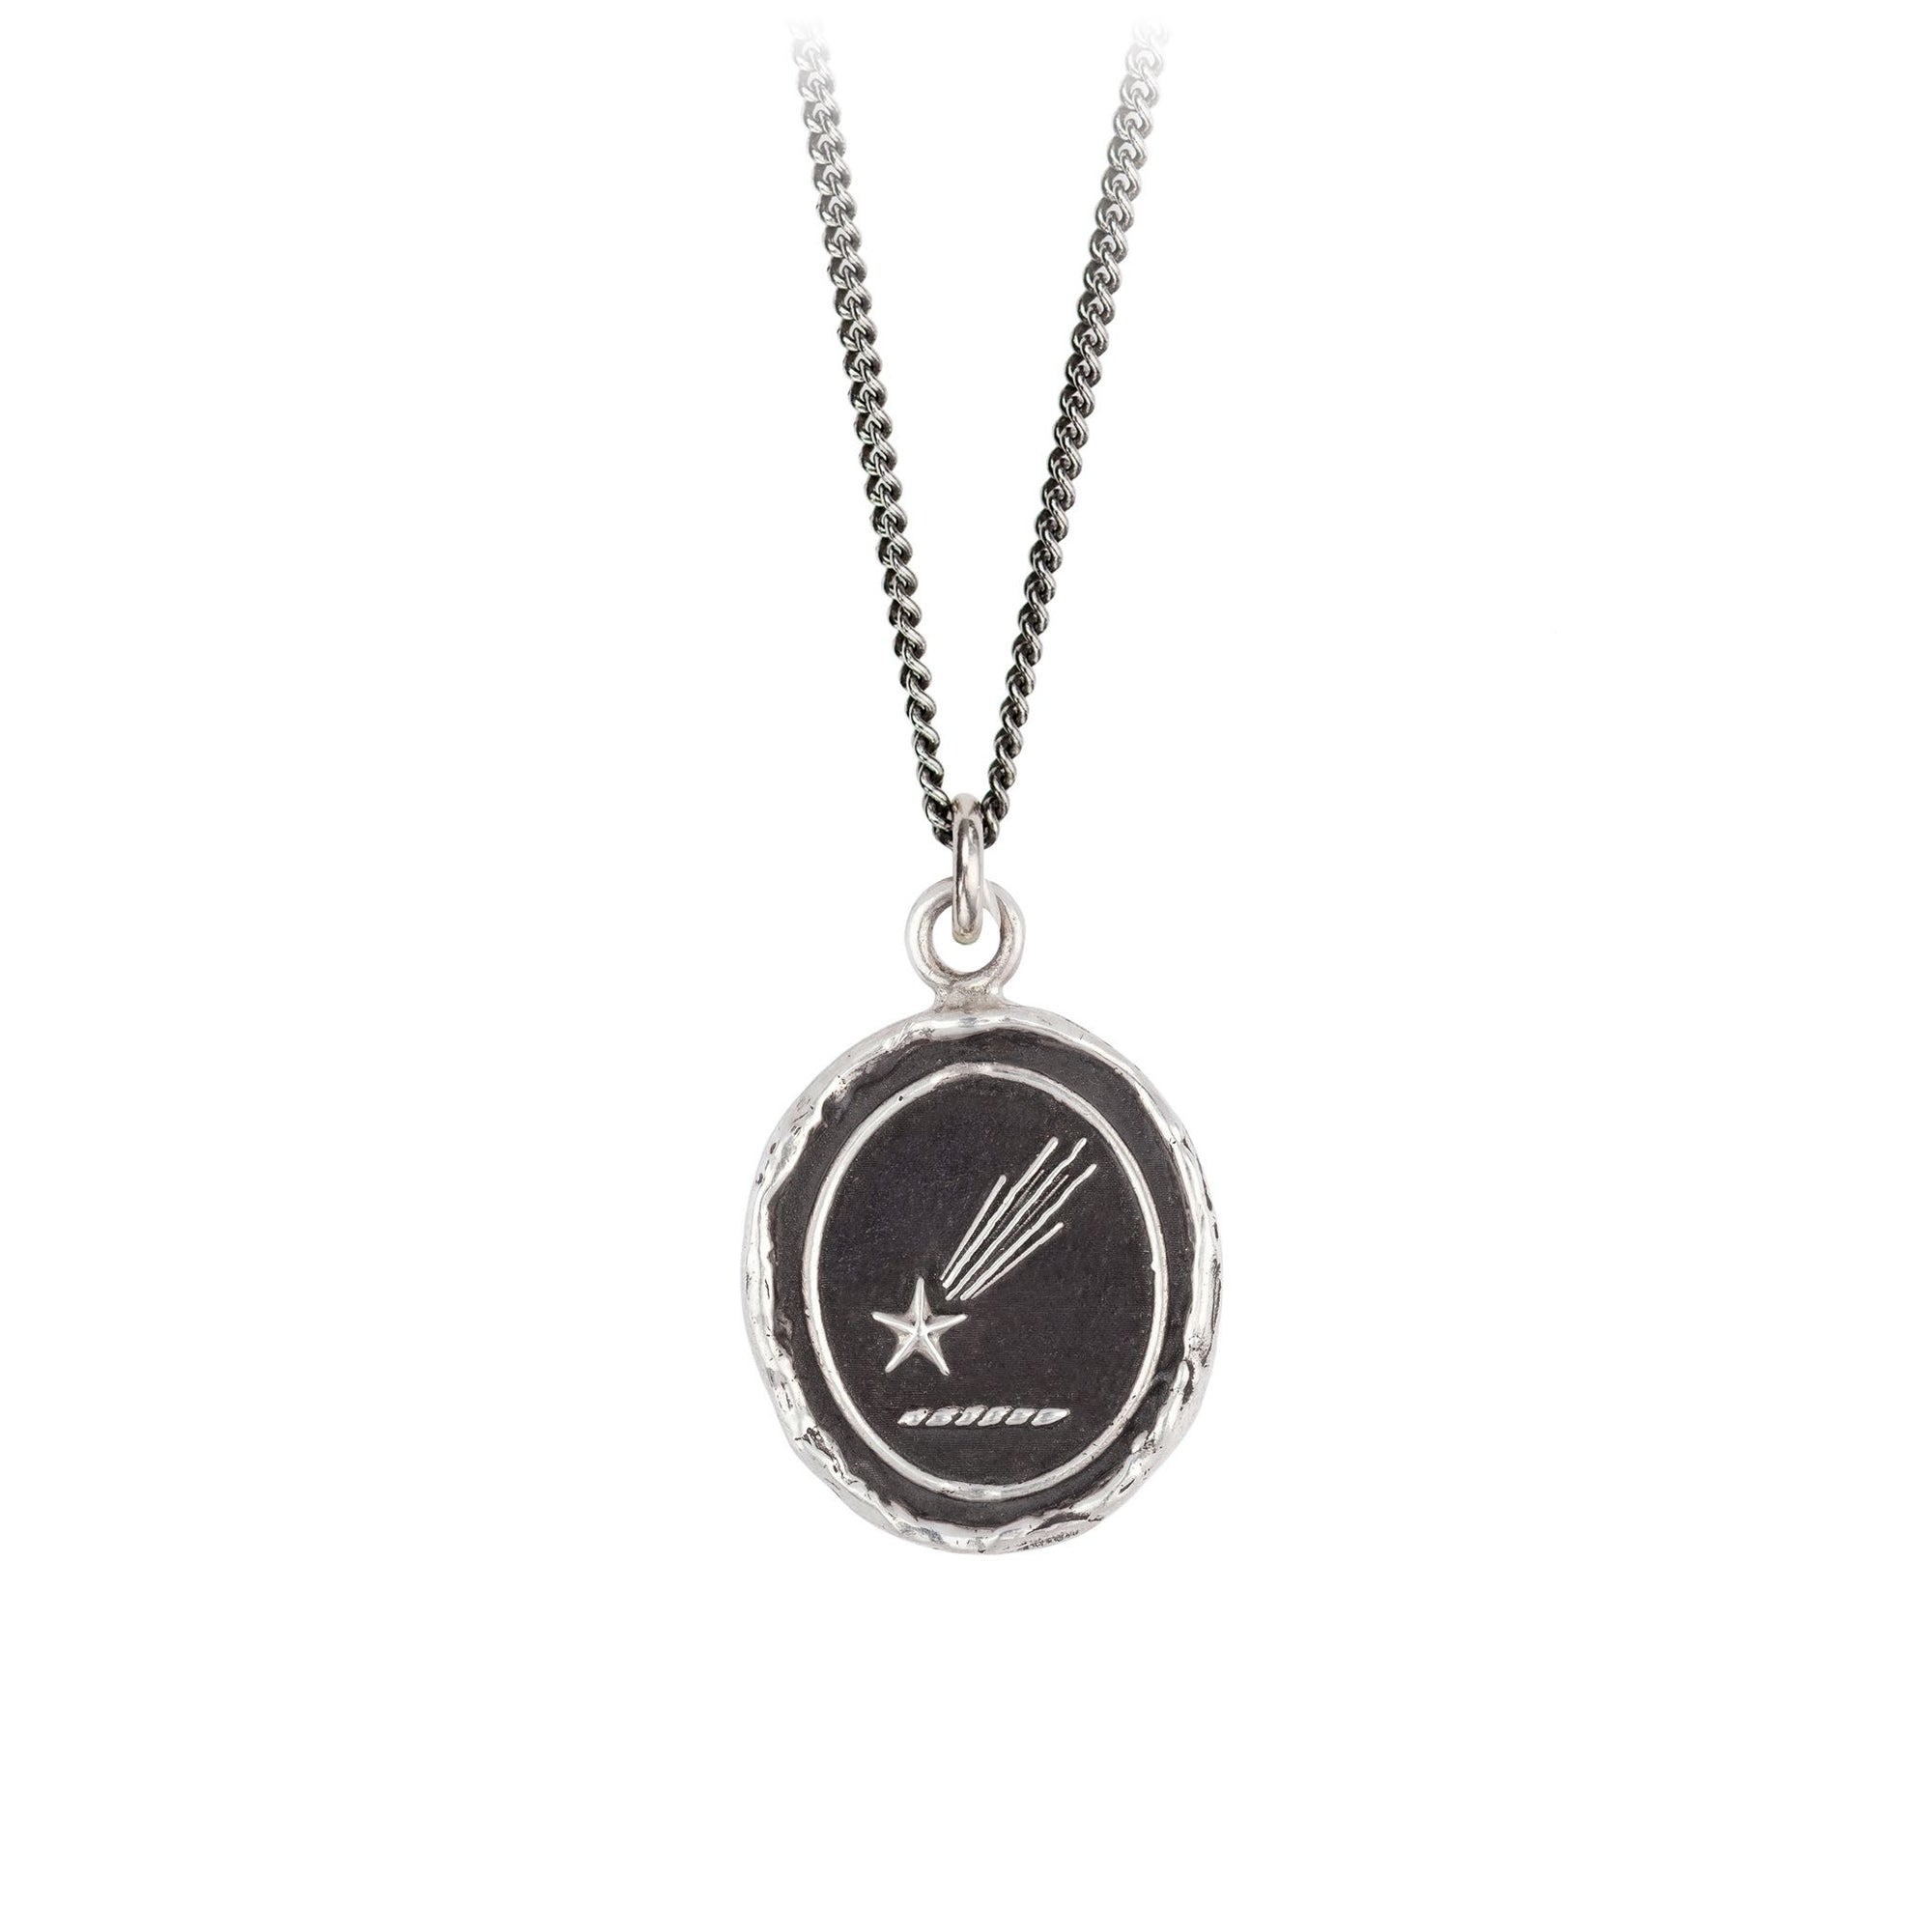 Pyrrha Shooting Star Talisman Necklace Fine Curb Chain Silver